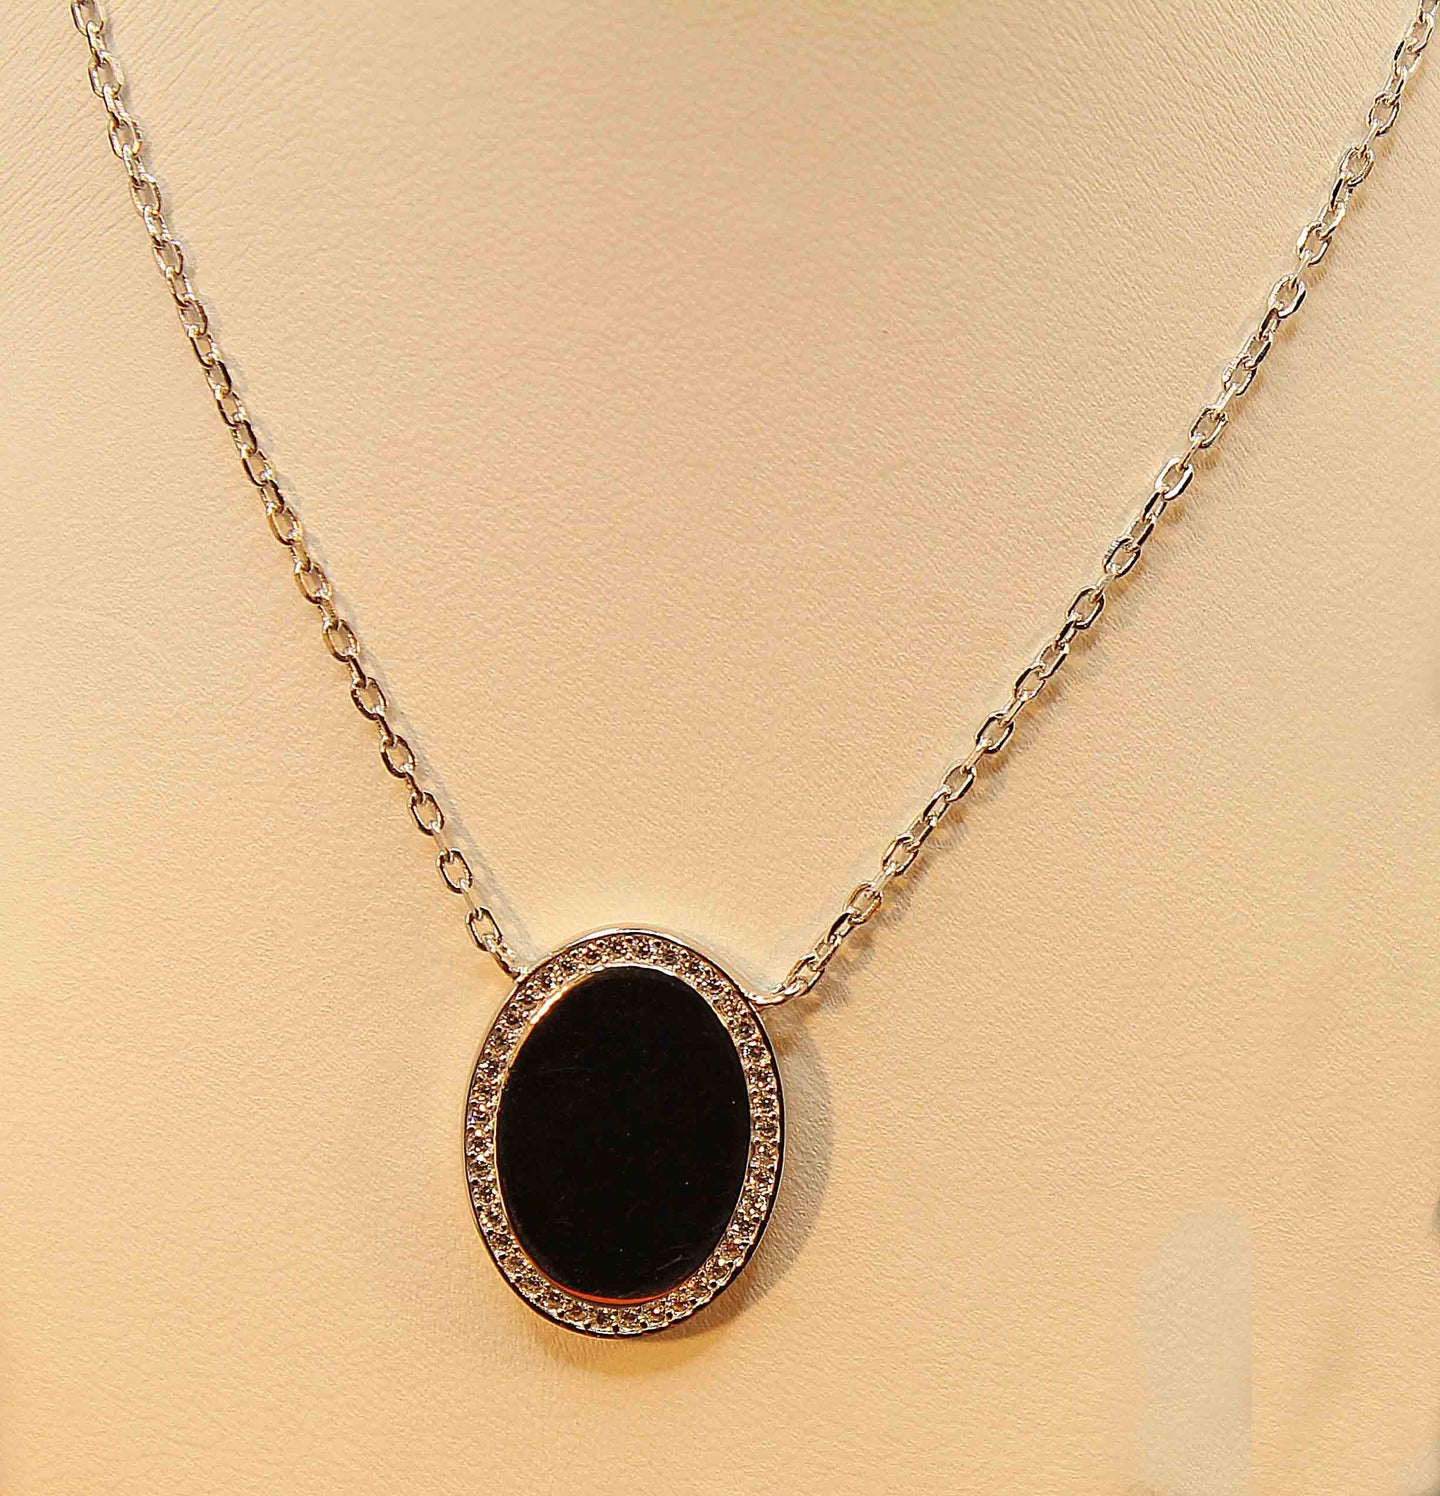 Sterling silver with rhodium finish smooth oval pendant surrounded by cubic necklace